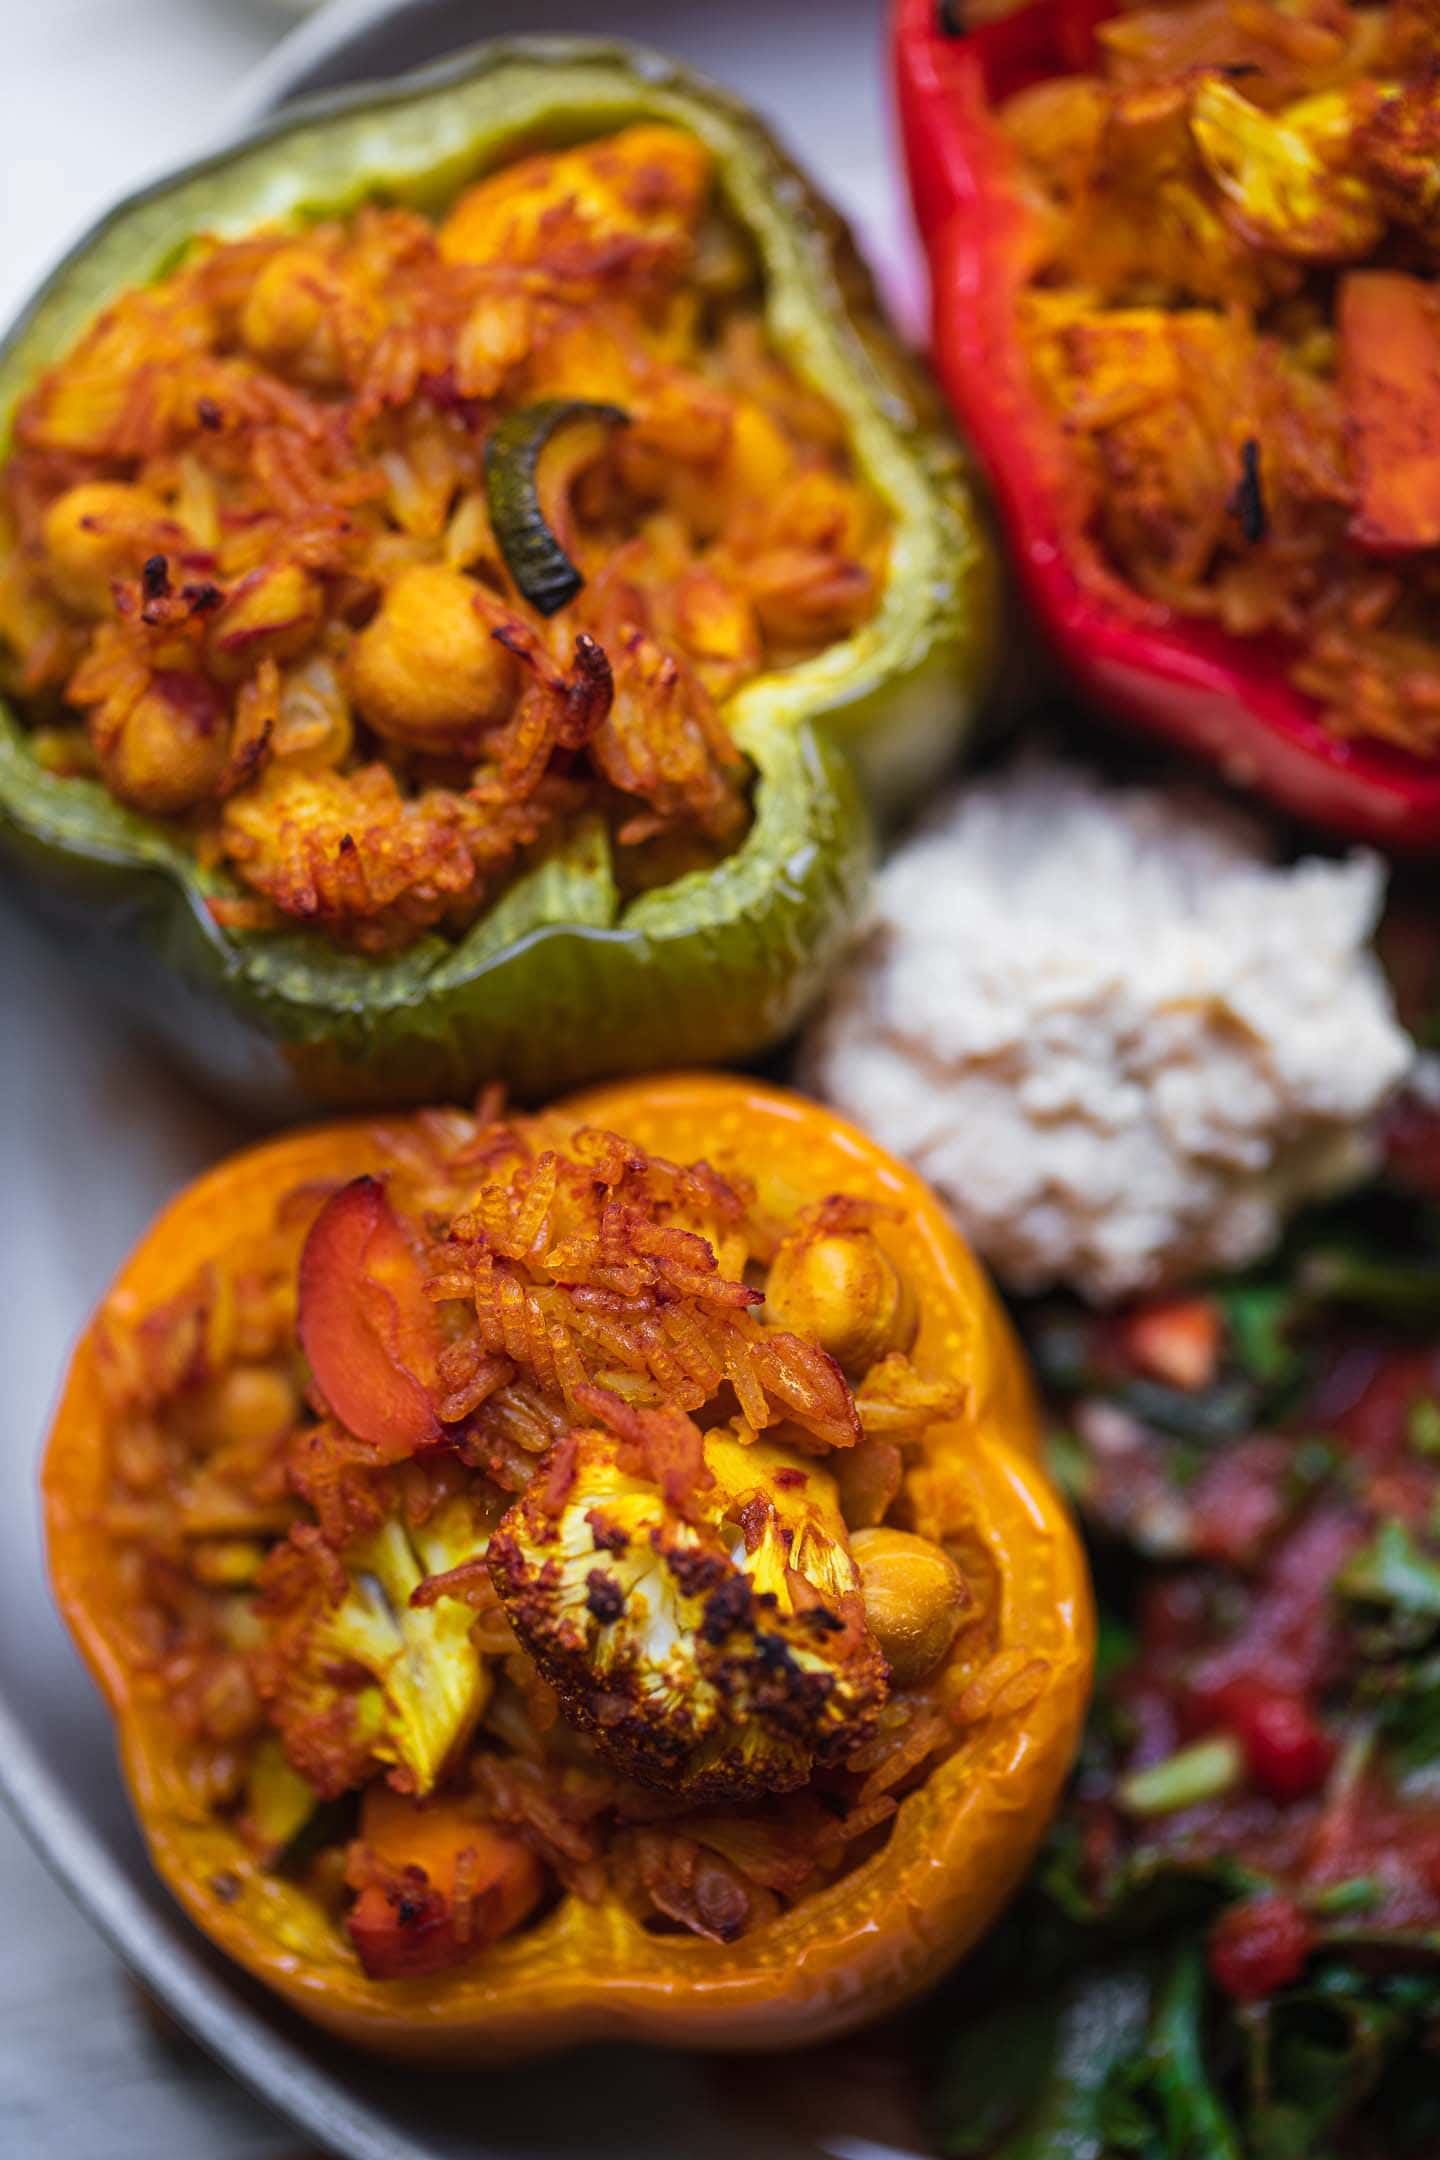 Chickpea and cauliflower vegan stuffed peppers